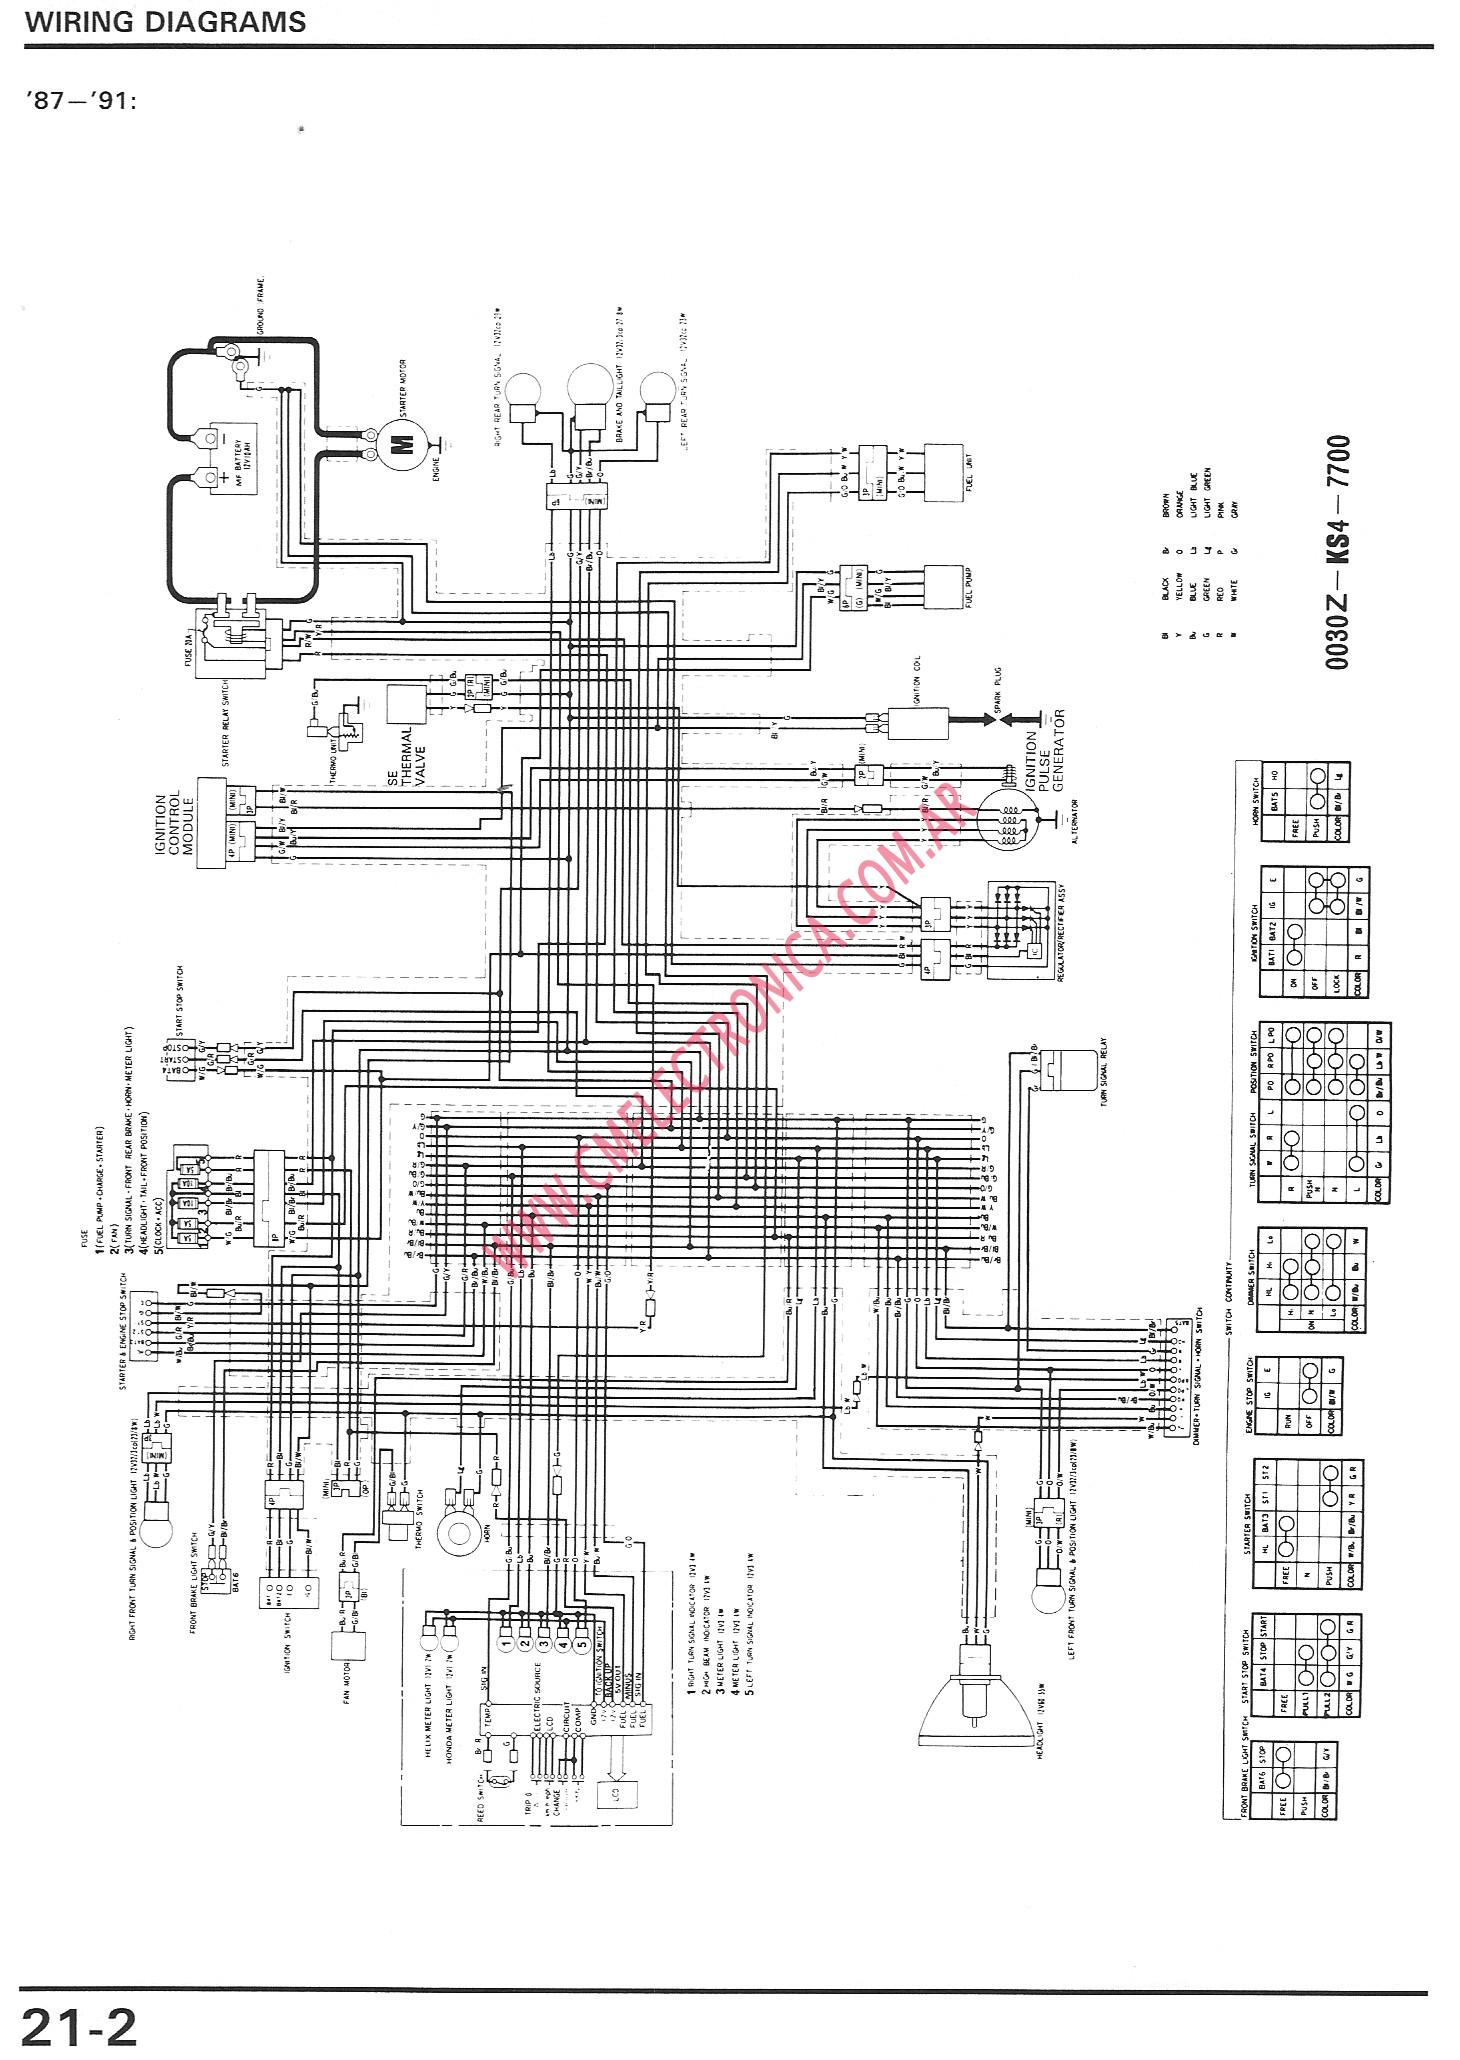 01 Zr 600 Wiring Diagram